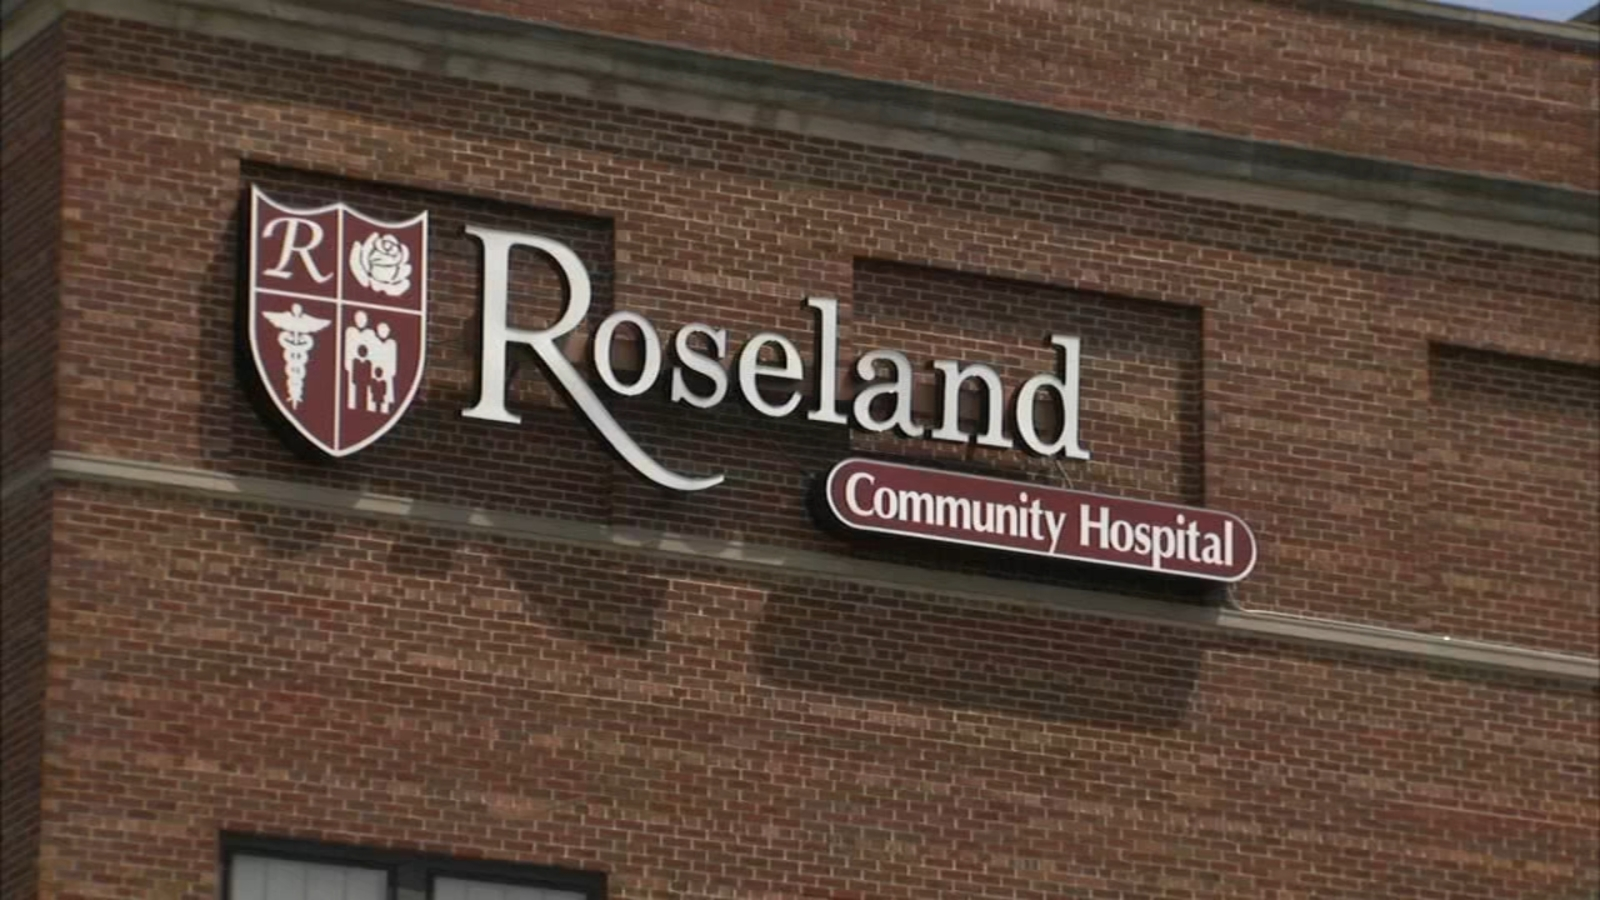 Image COVID Chicago: Just 37% of predominantly Black Roseland Community Hospital staff have received COVID-19 vaccine as mistrust persists